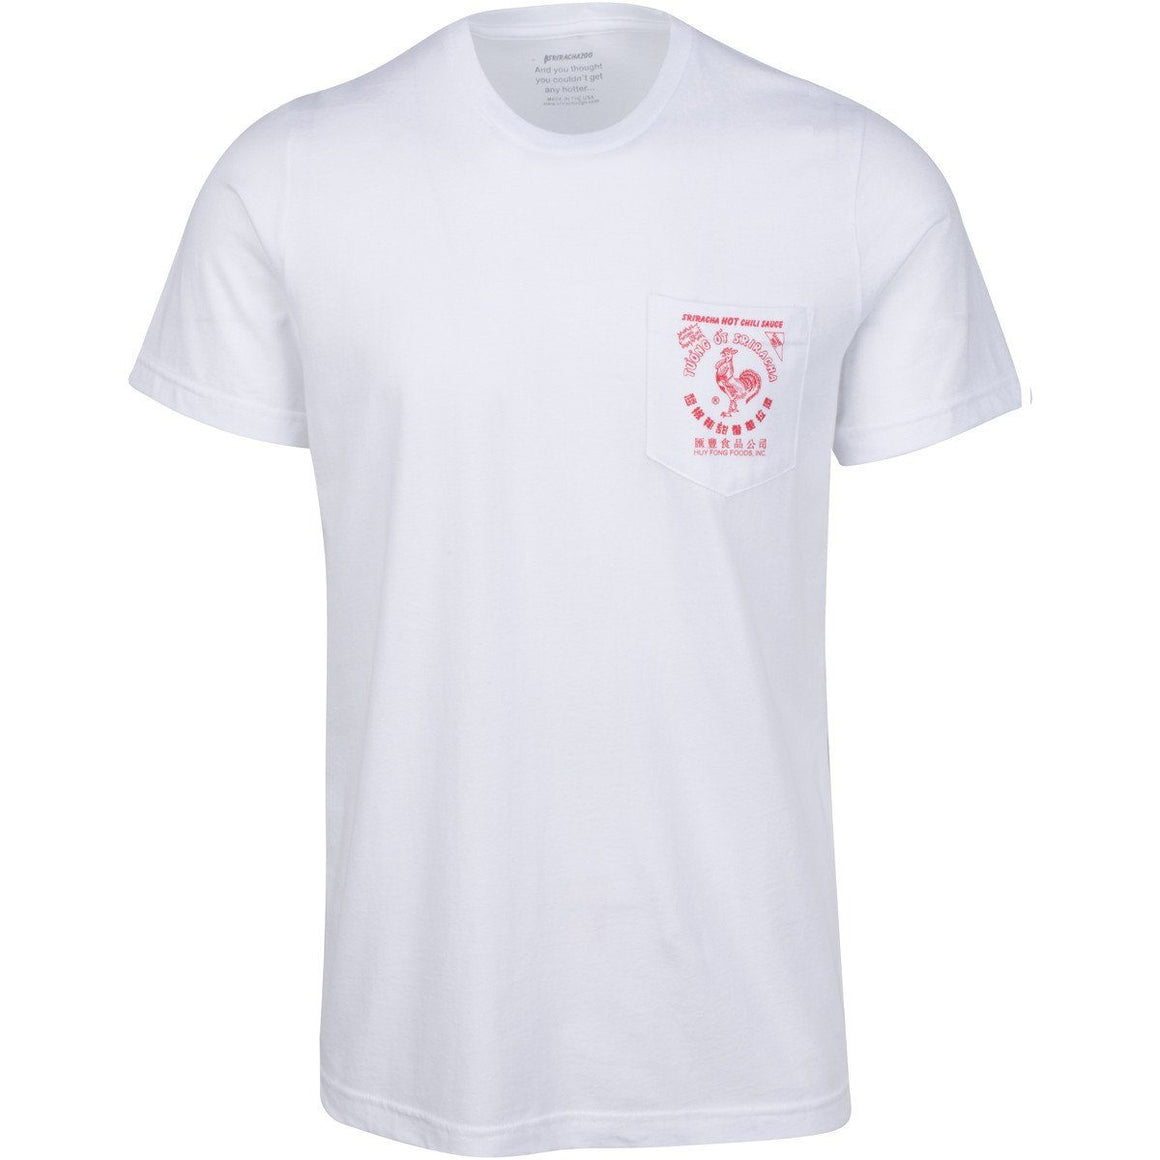 Apparel - Sriracha Pocket Tee